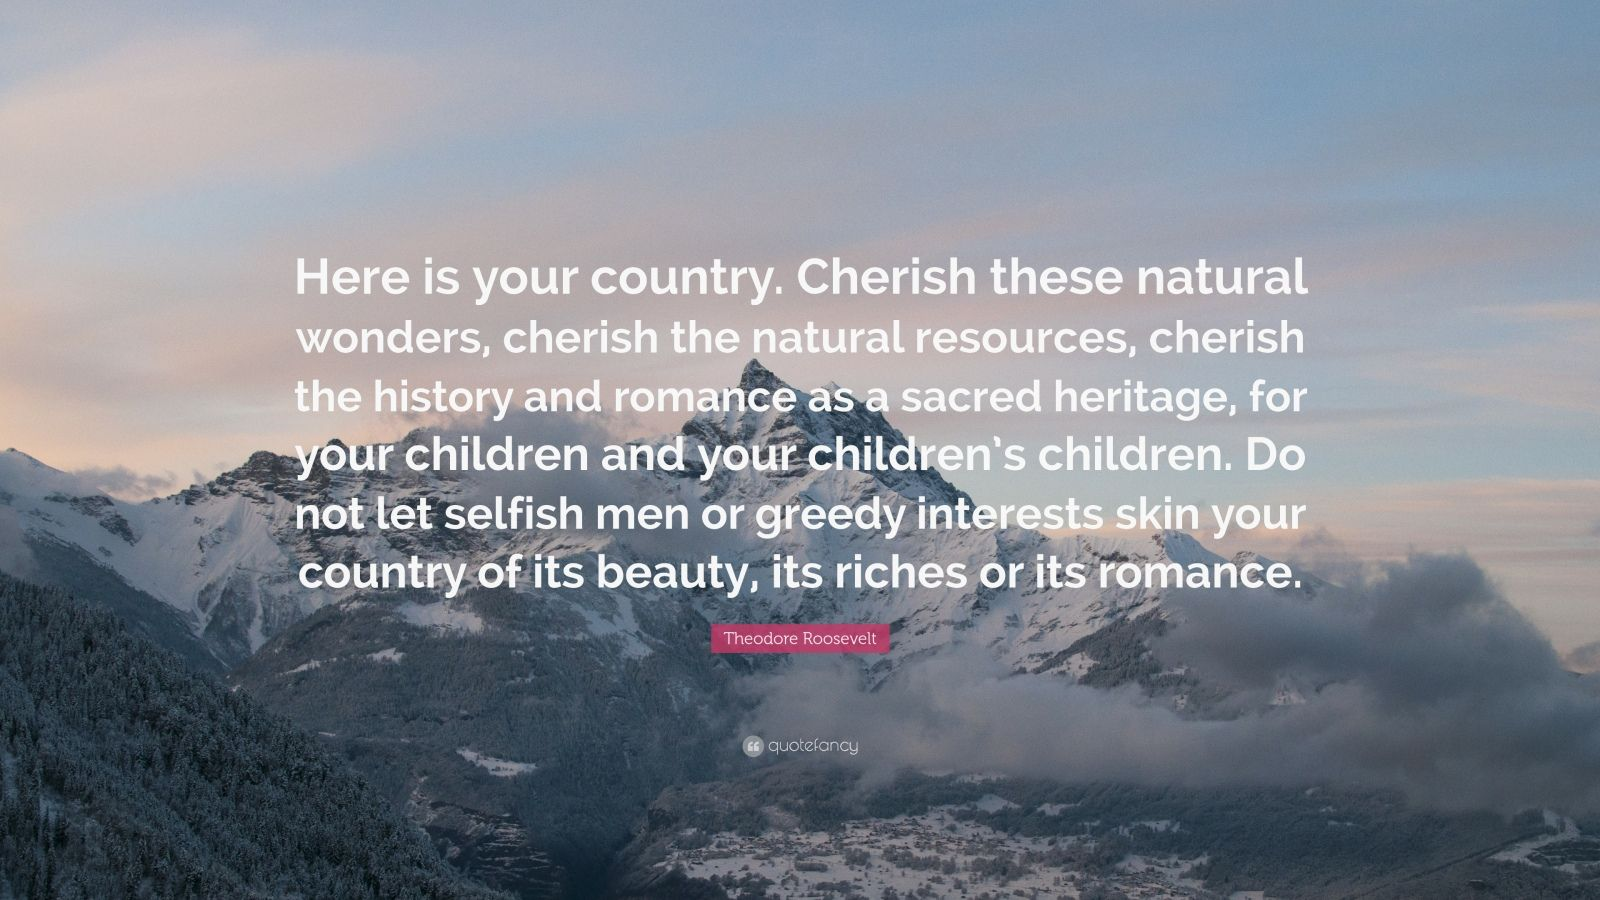 """Theodore Roosevelt Quote: """"Here is your country. Cherish these natural wonders, cherish the natural resources, cherish the history and romance as a sacred heritage, for your children and your children's children. Do not let selfish men or greedy interests skin your country of its beauty, its riches or its romance."""""""